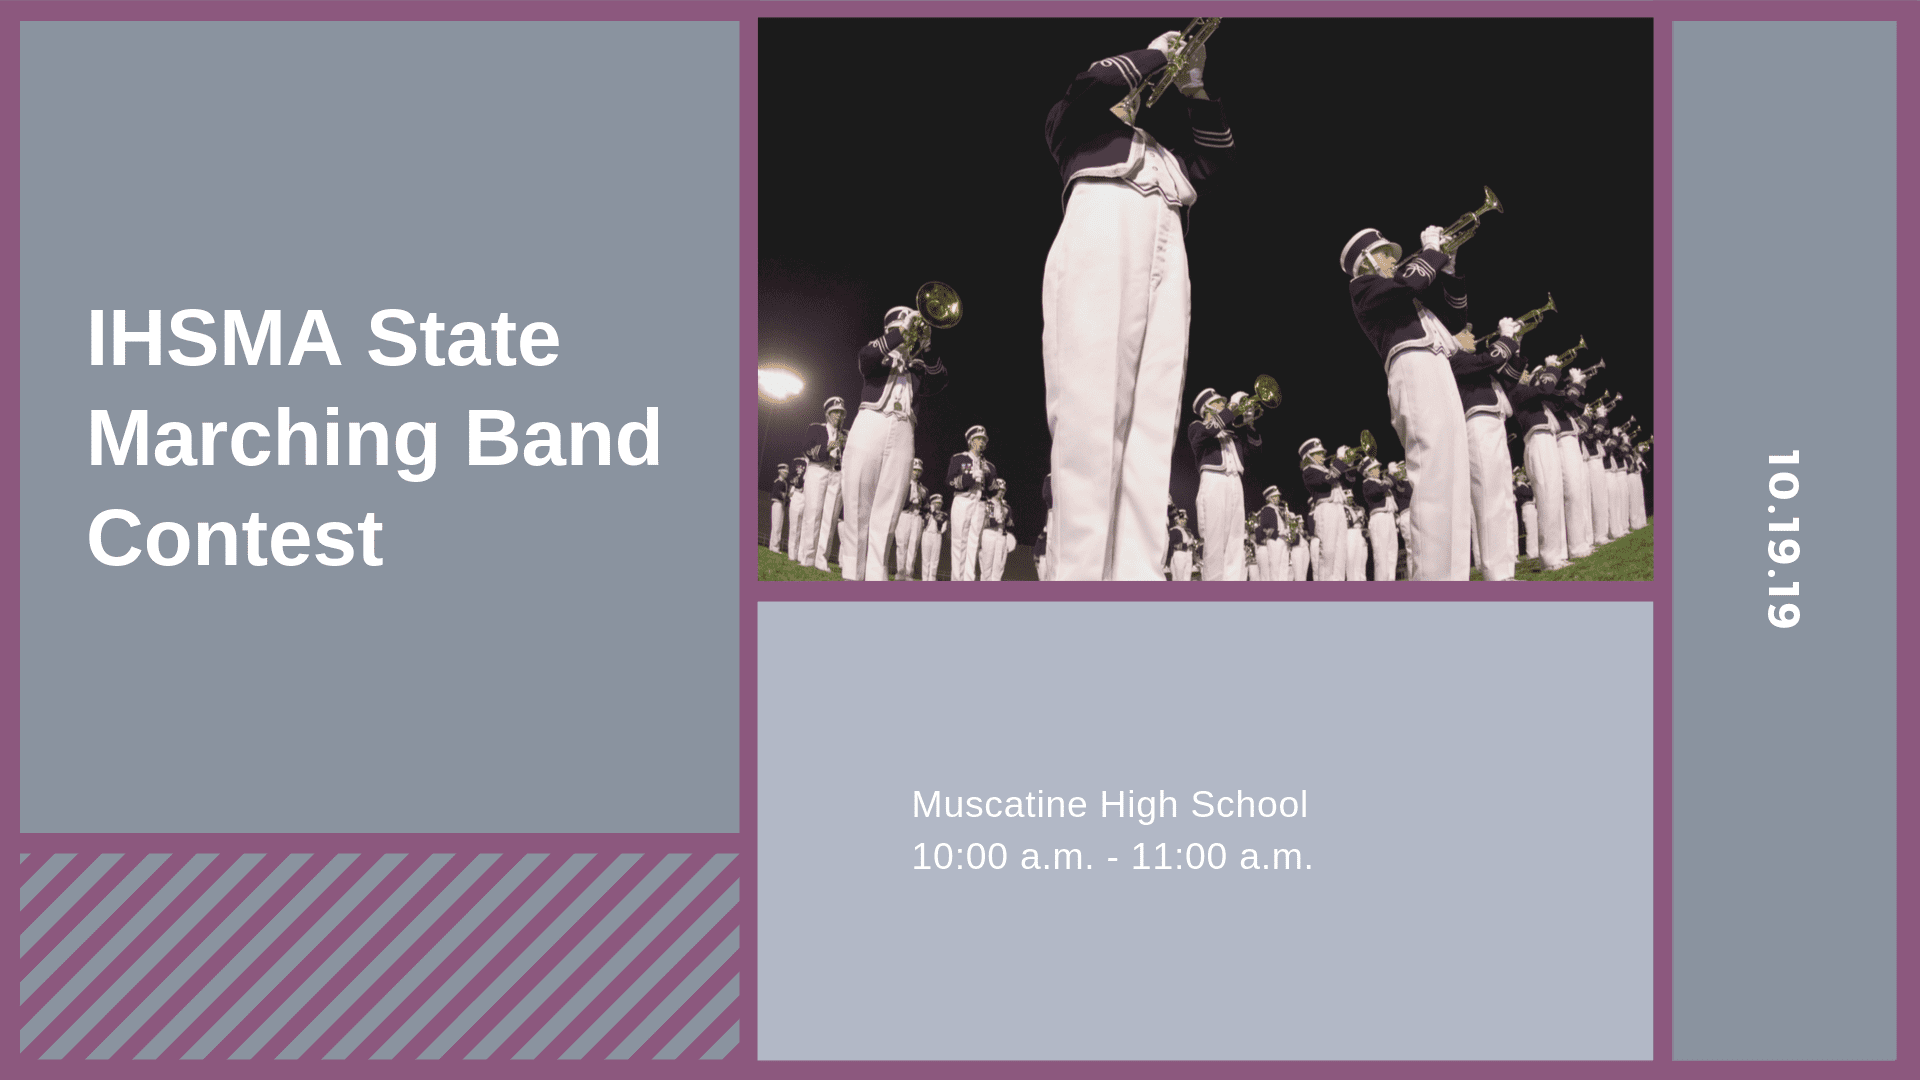 IHSMA State Marching Band Contest